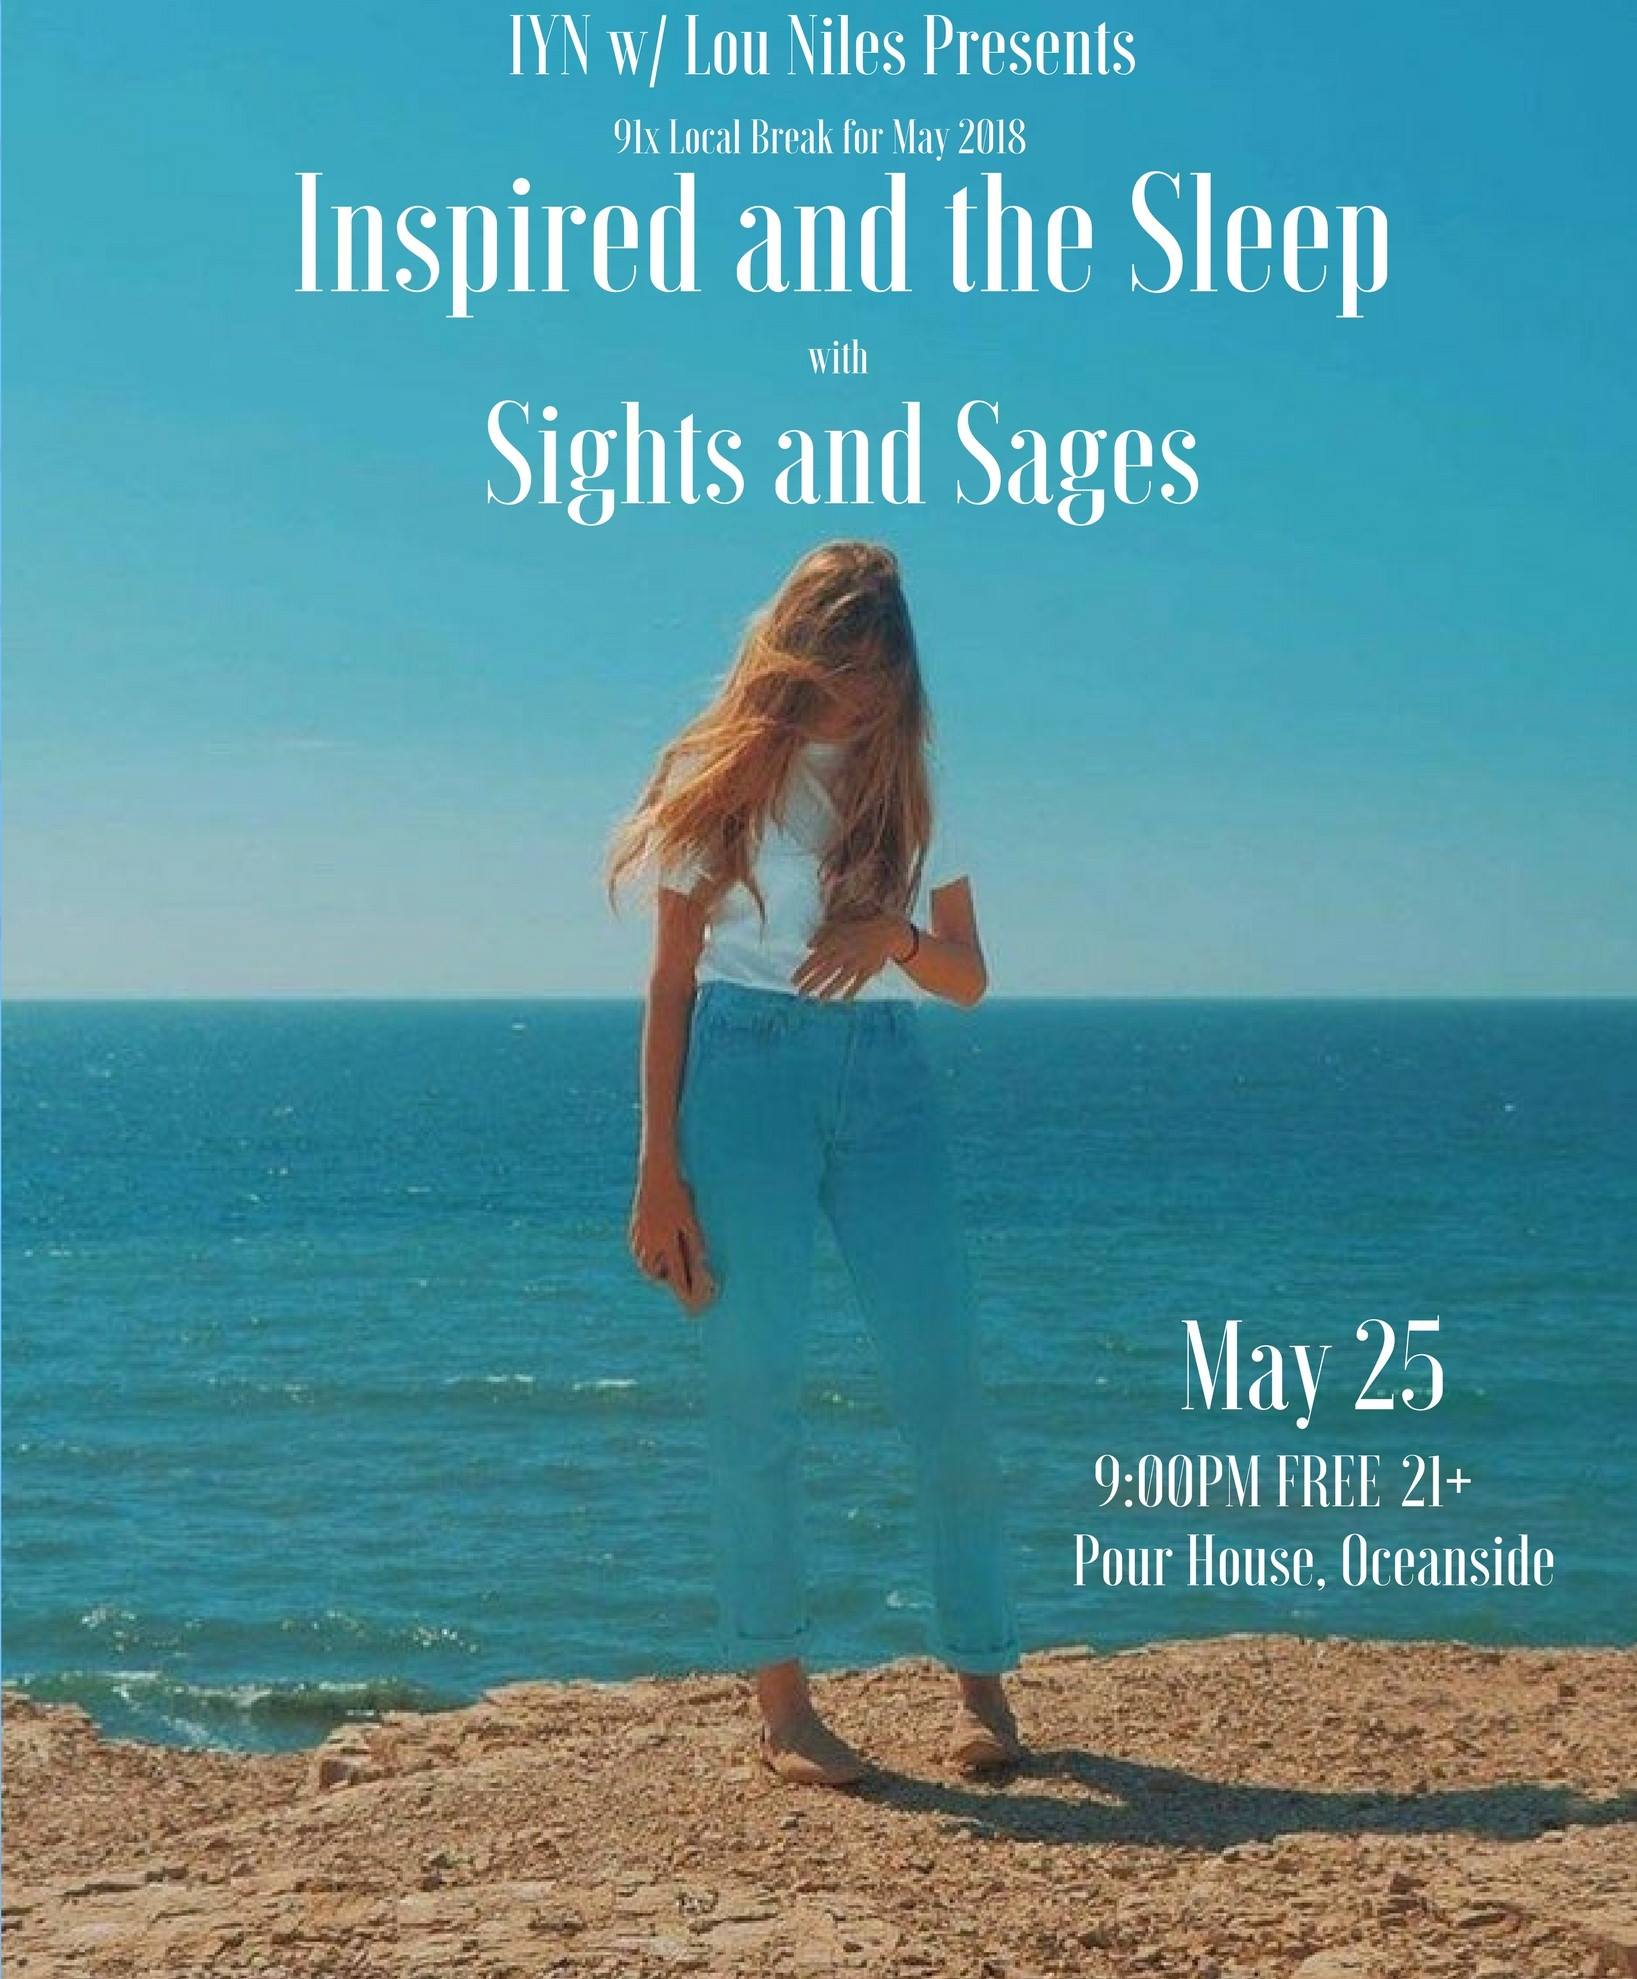 Free Show Features Two 91x Local Break Artists Inspired The Sleep And Sights Sages